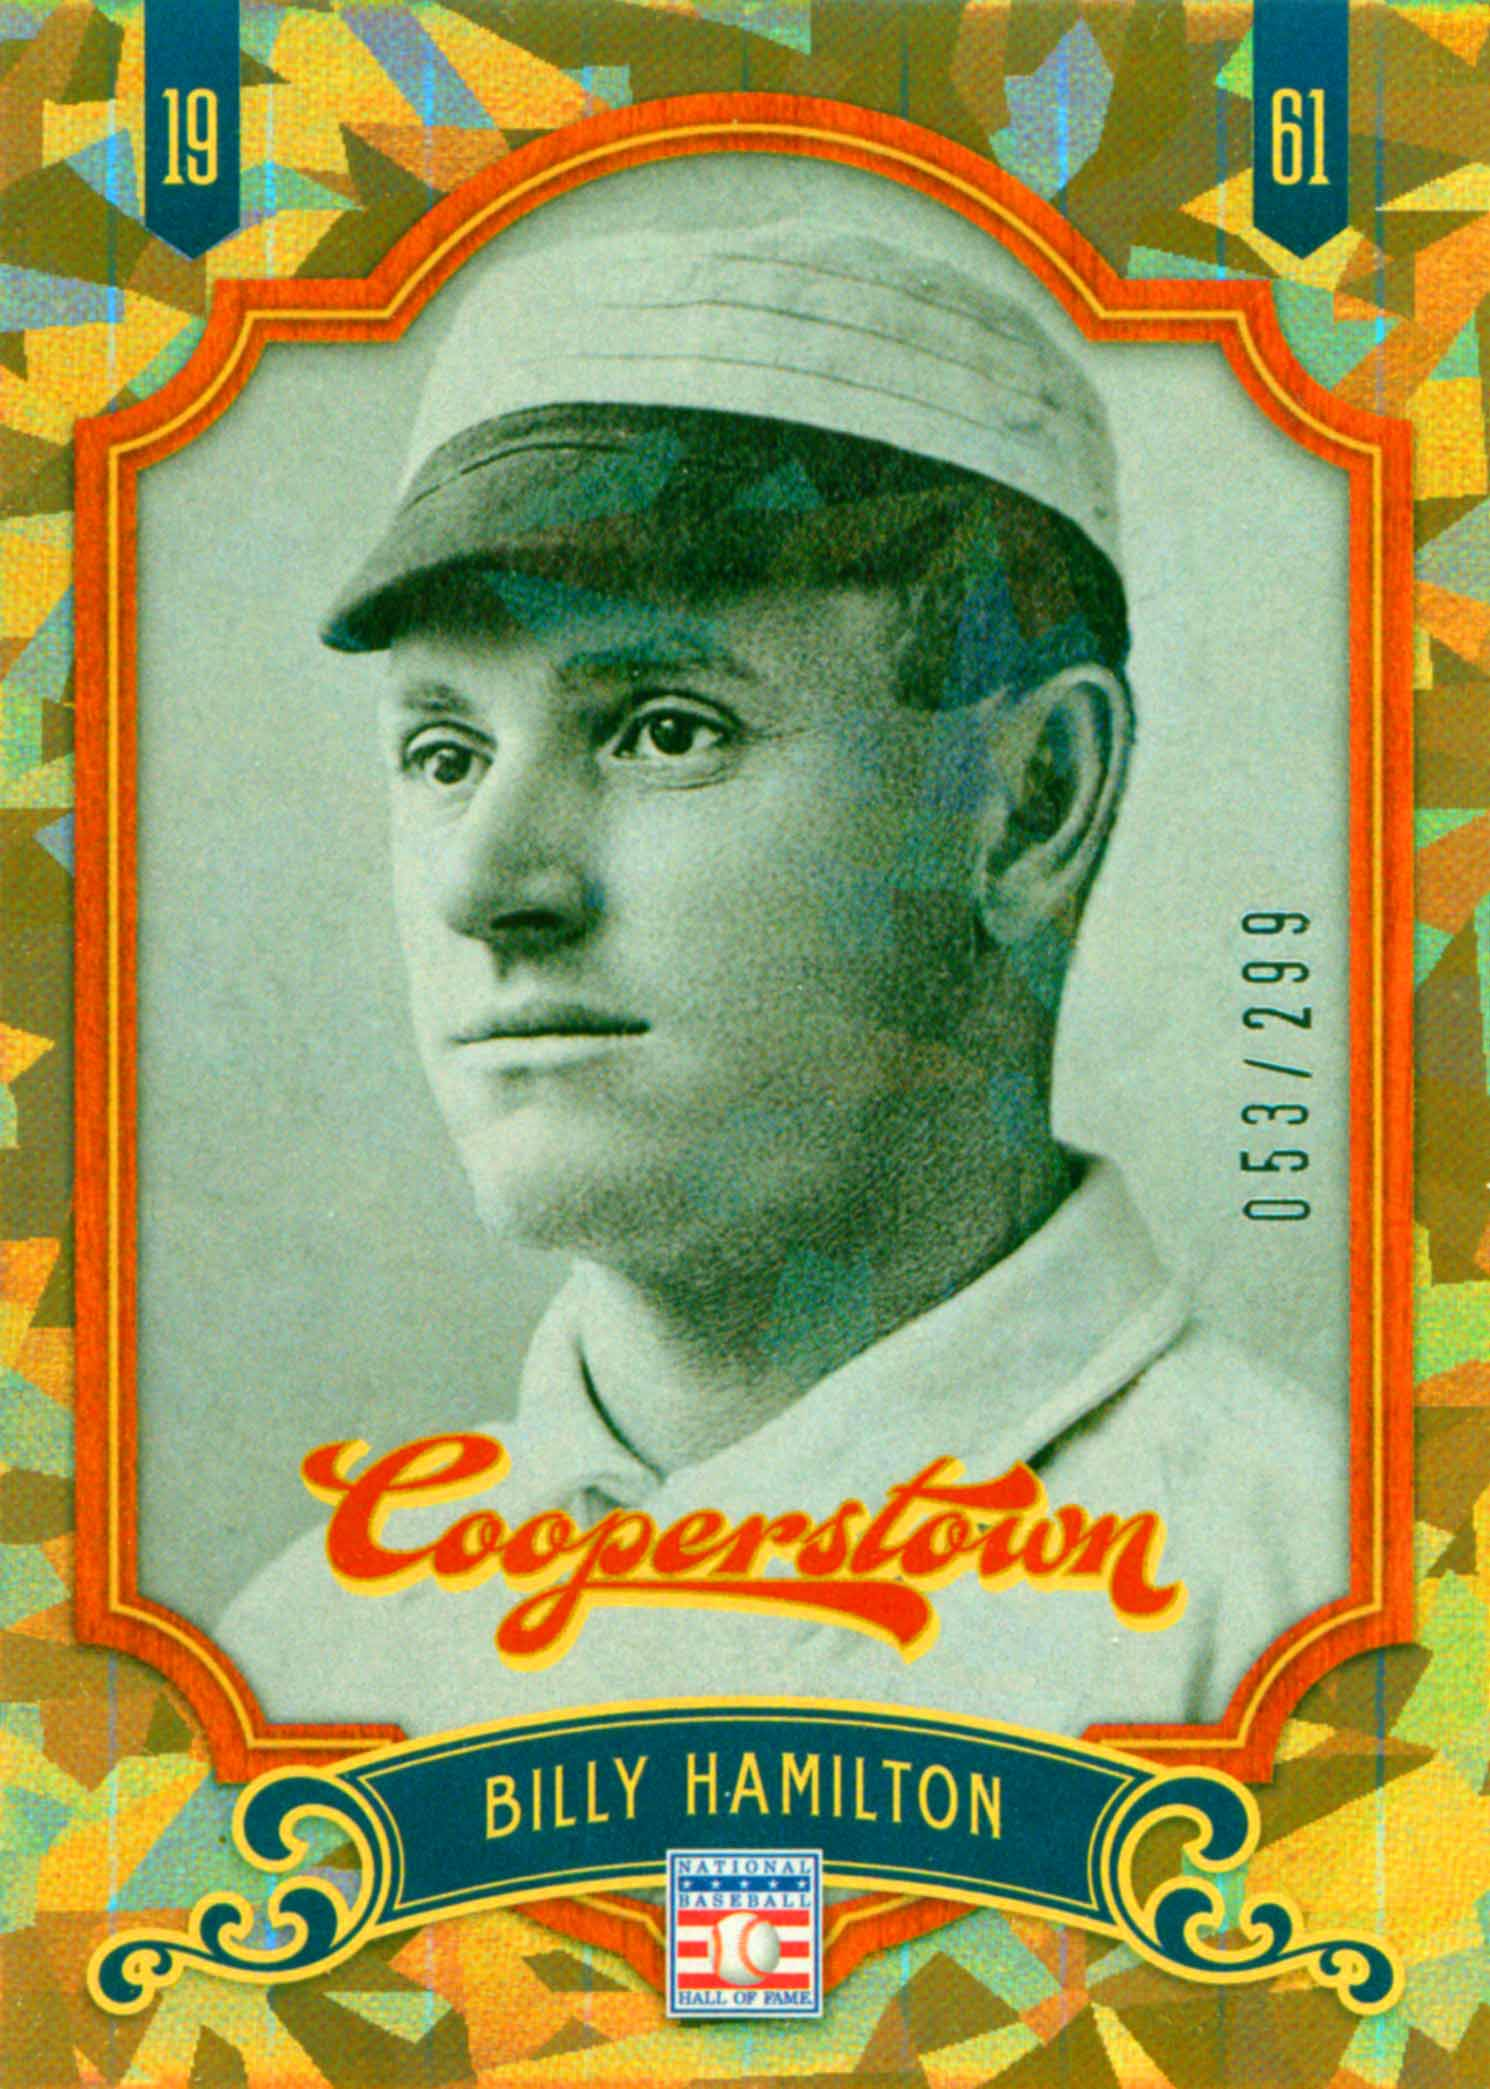 2012 Panini-Cooperstown-Crystal Collection